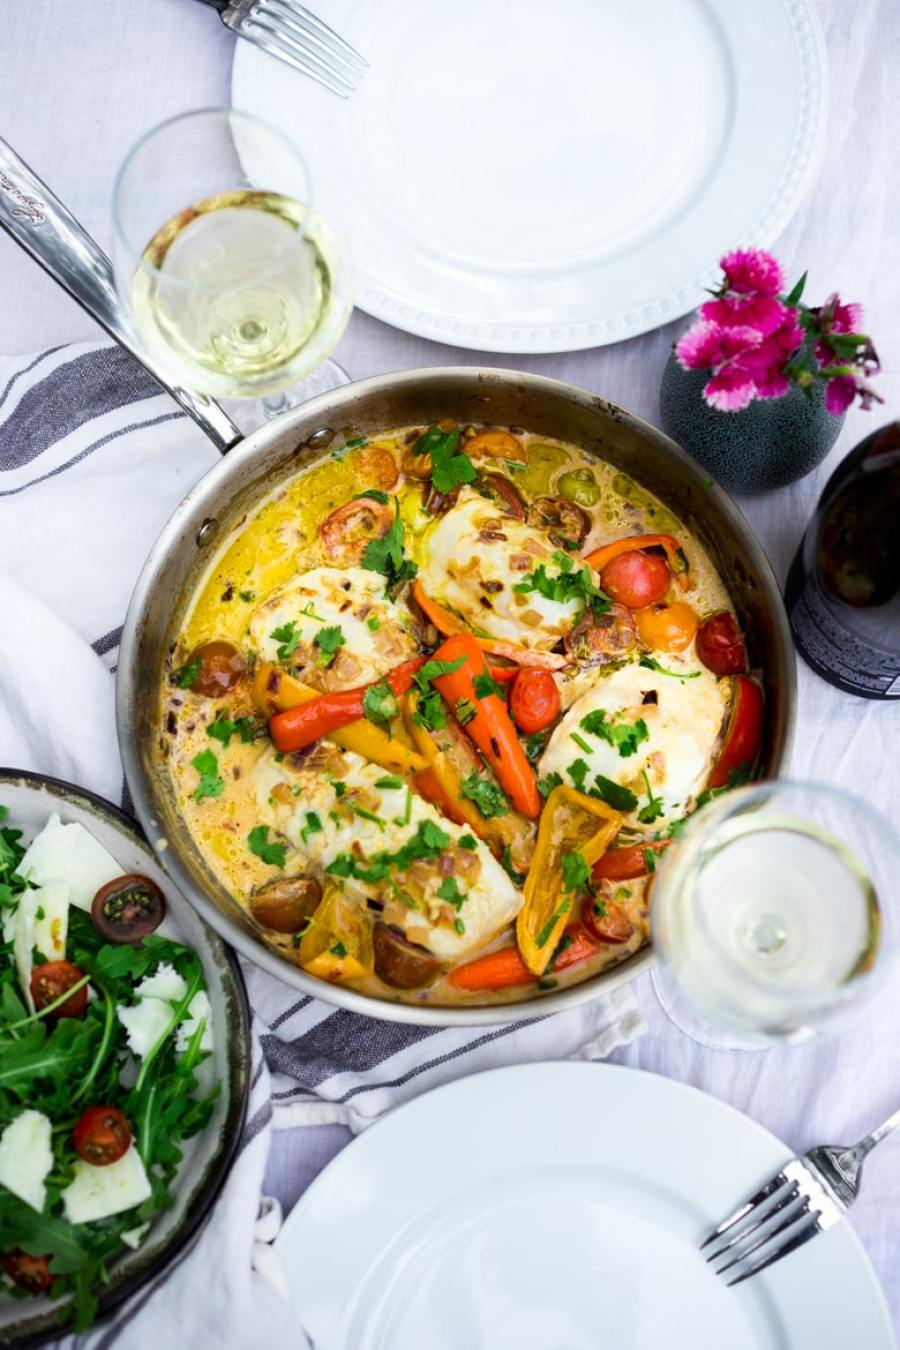 Brazilian Fish Stew - (aka Moqueca) with coconut milk, lime and jalapeño - a summery seafood dish, perfect for alfresco dining! | www.feastingathome.com #seafoodalfrescowithlagostina